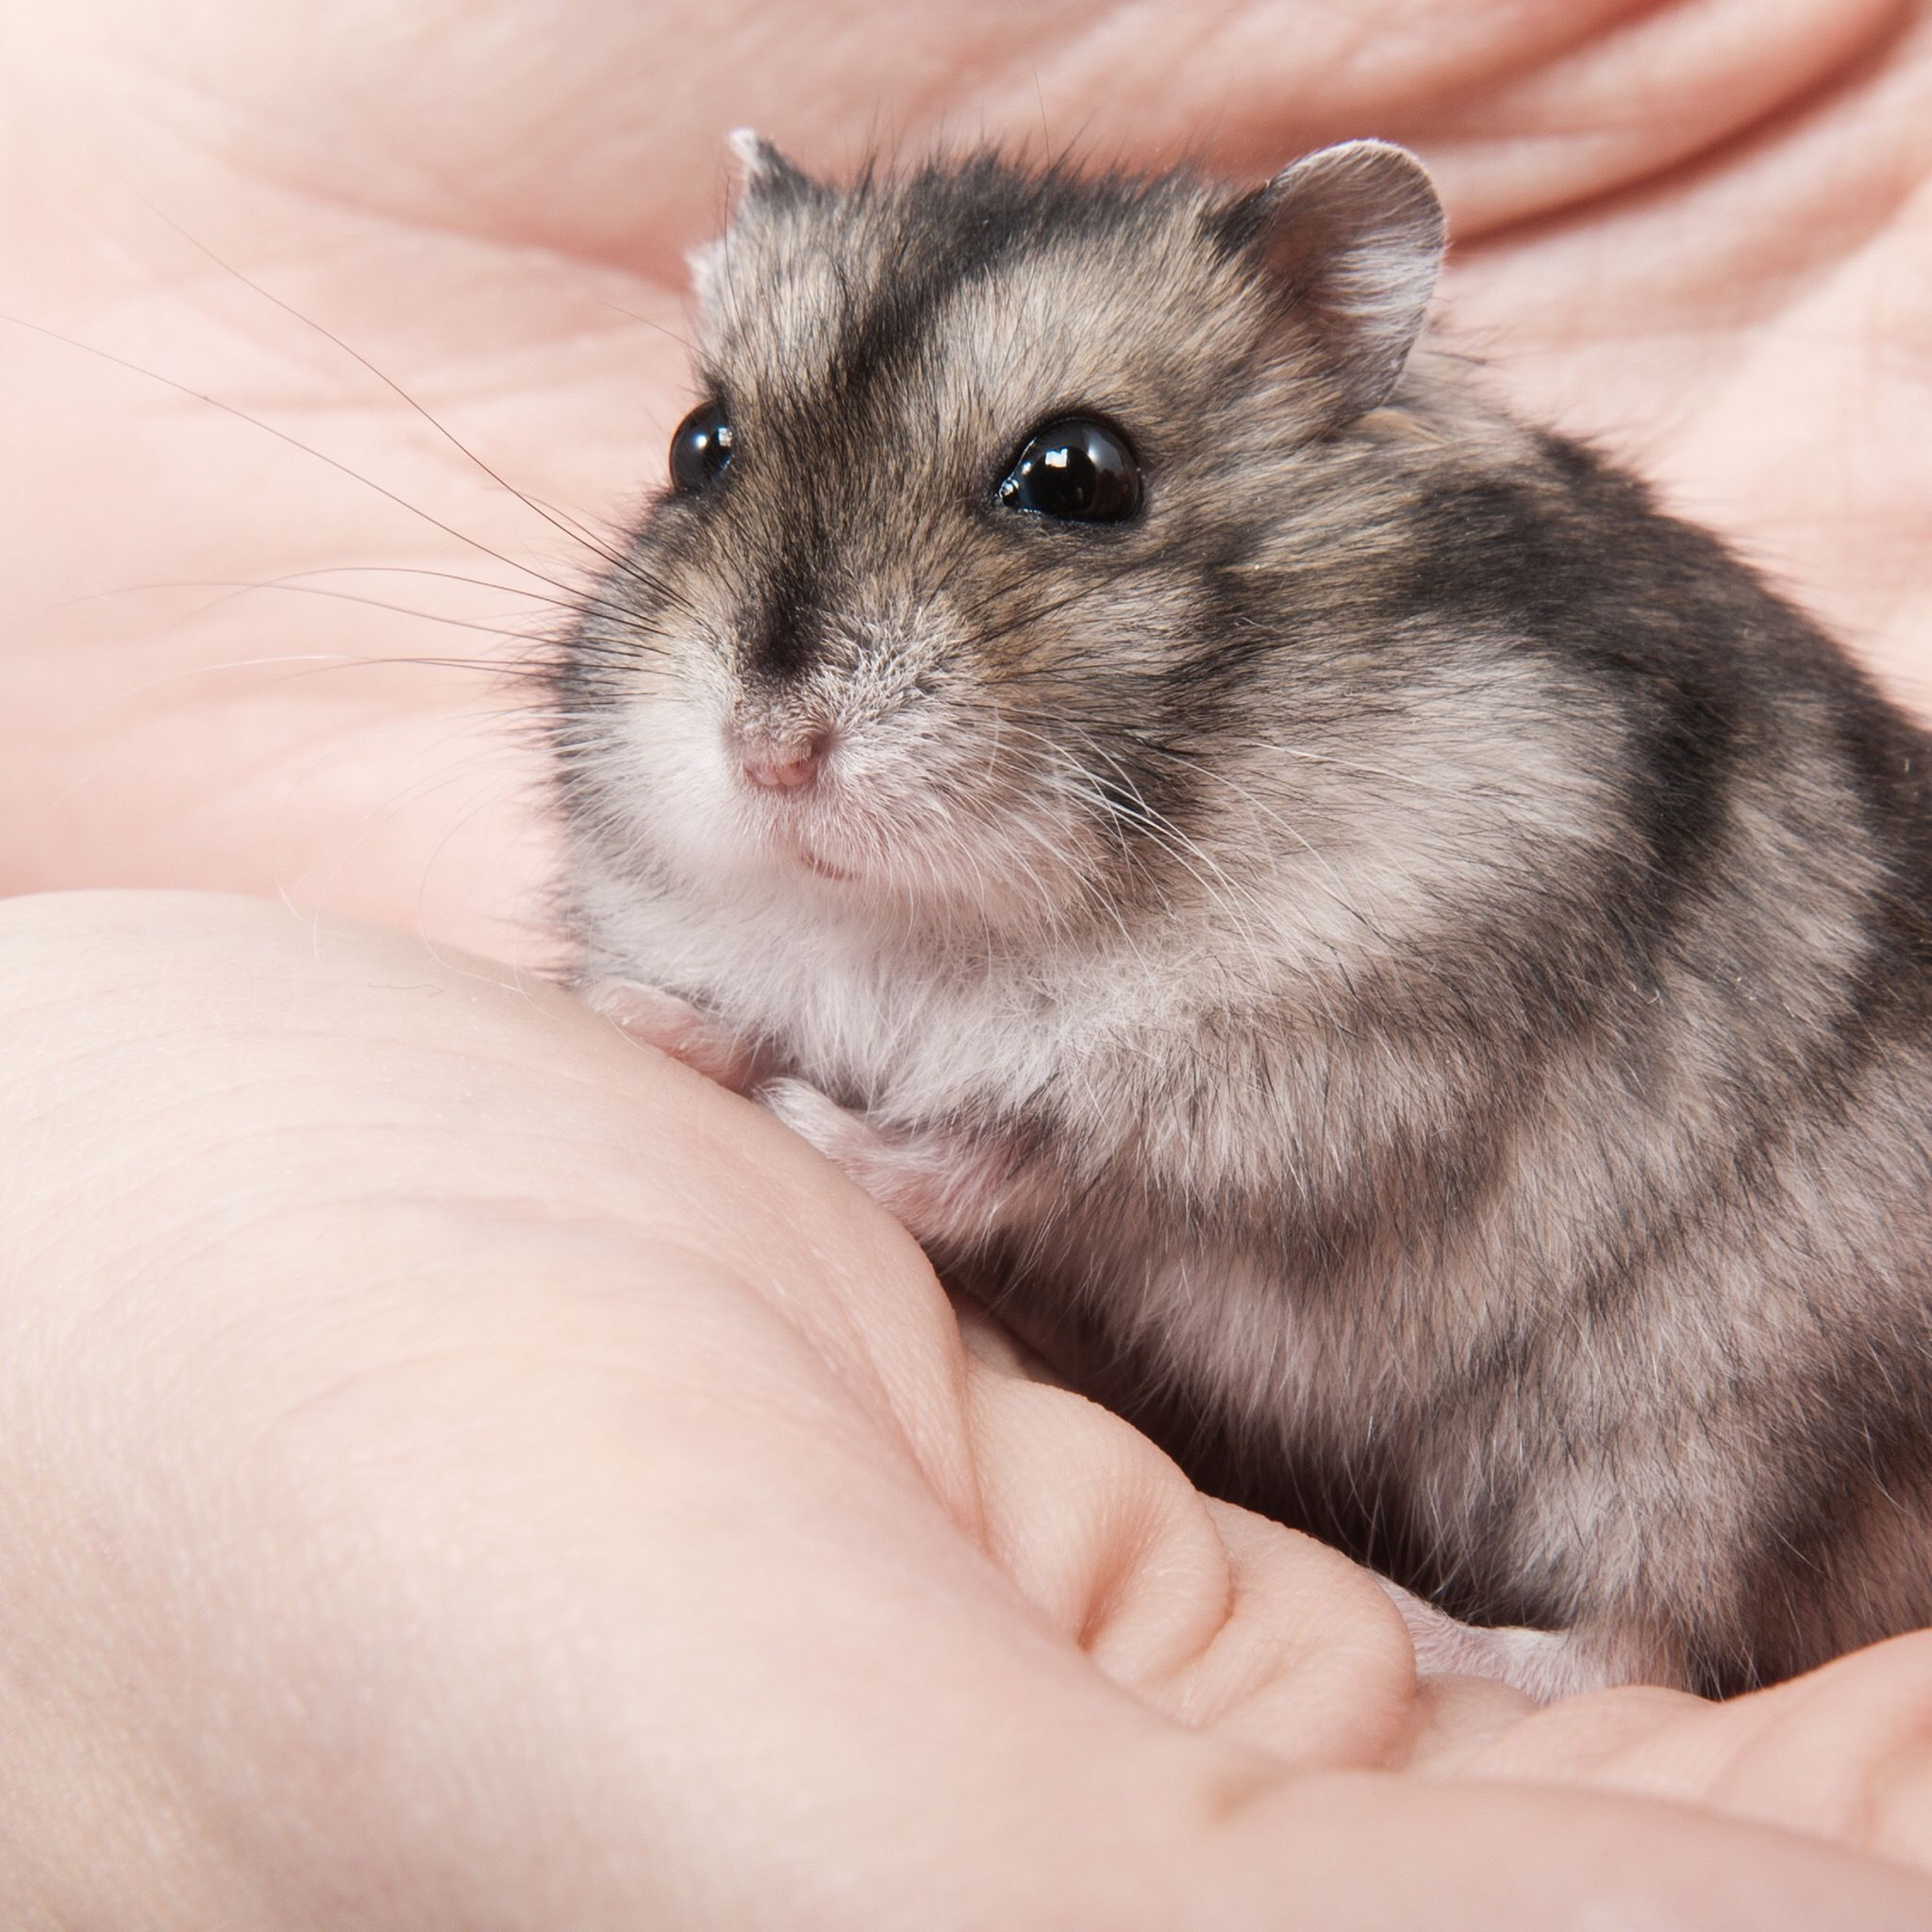 Pin By Puthya N Sabrina On Hamster Rule The World Hamster Cute Hamsters Male And Female Animals